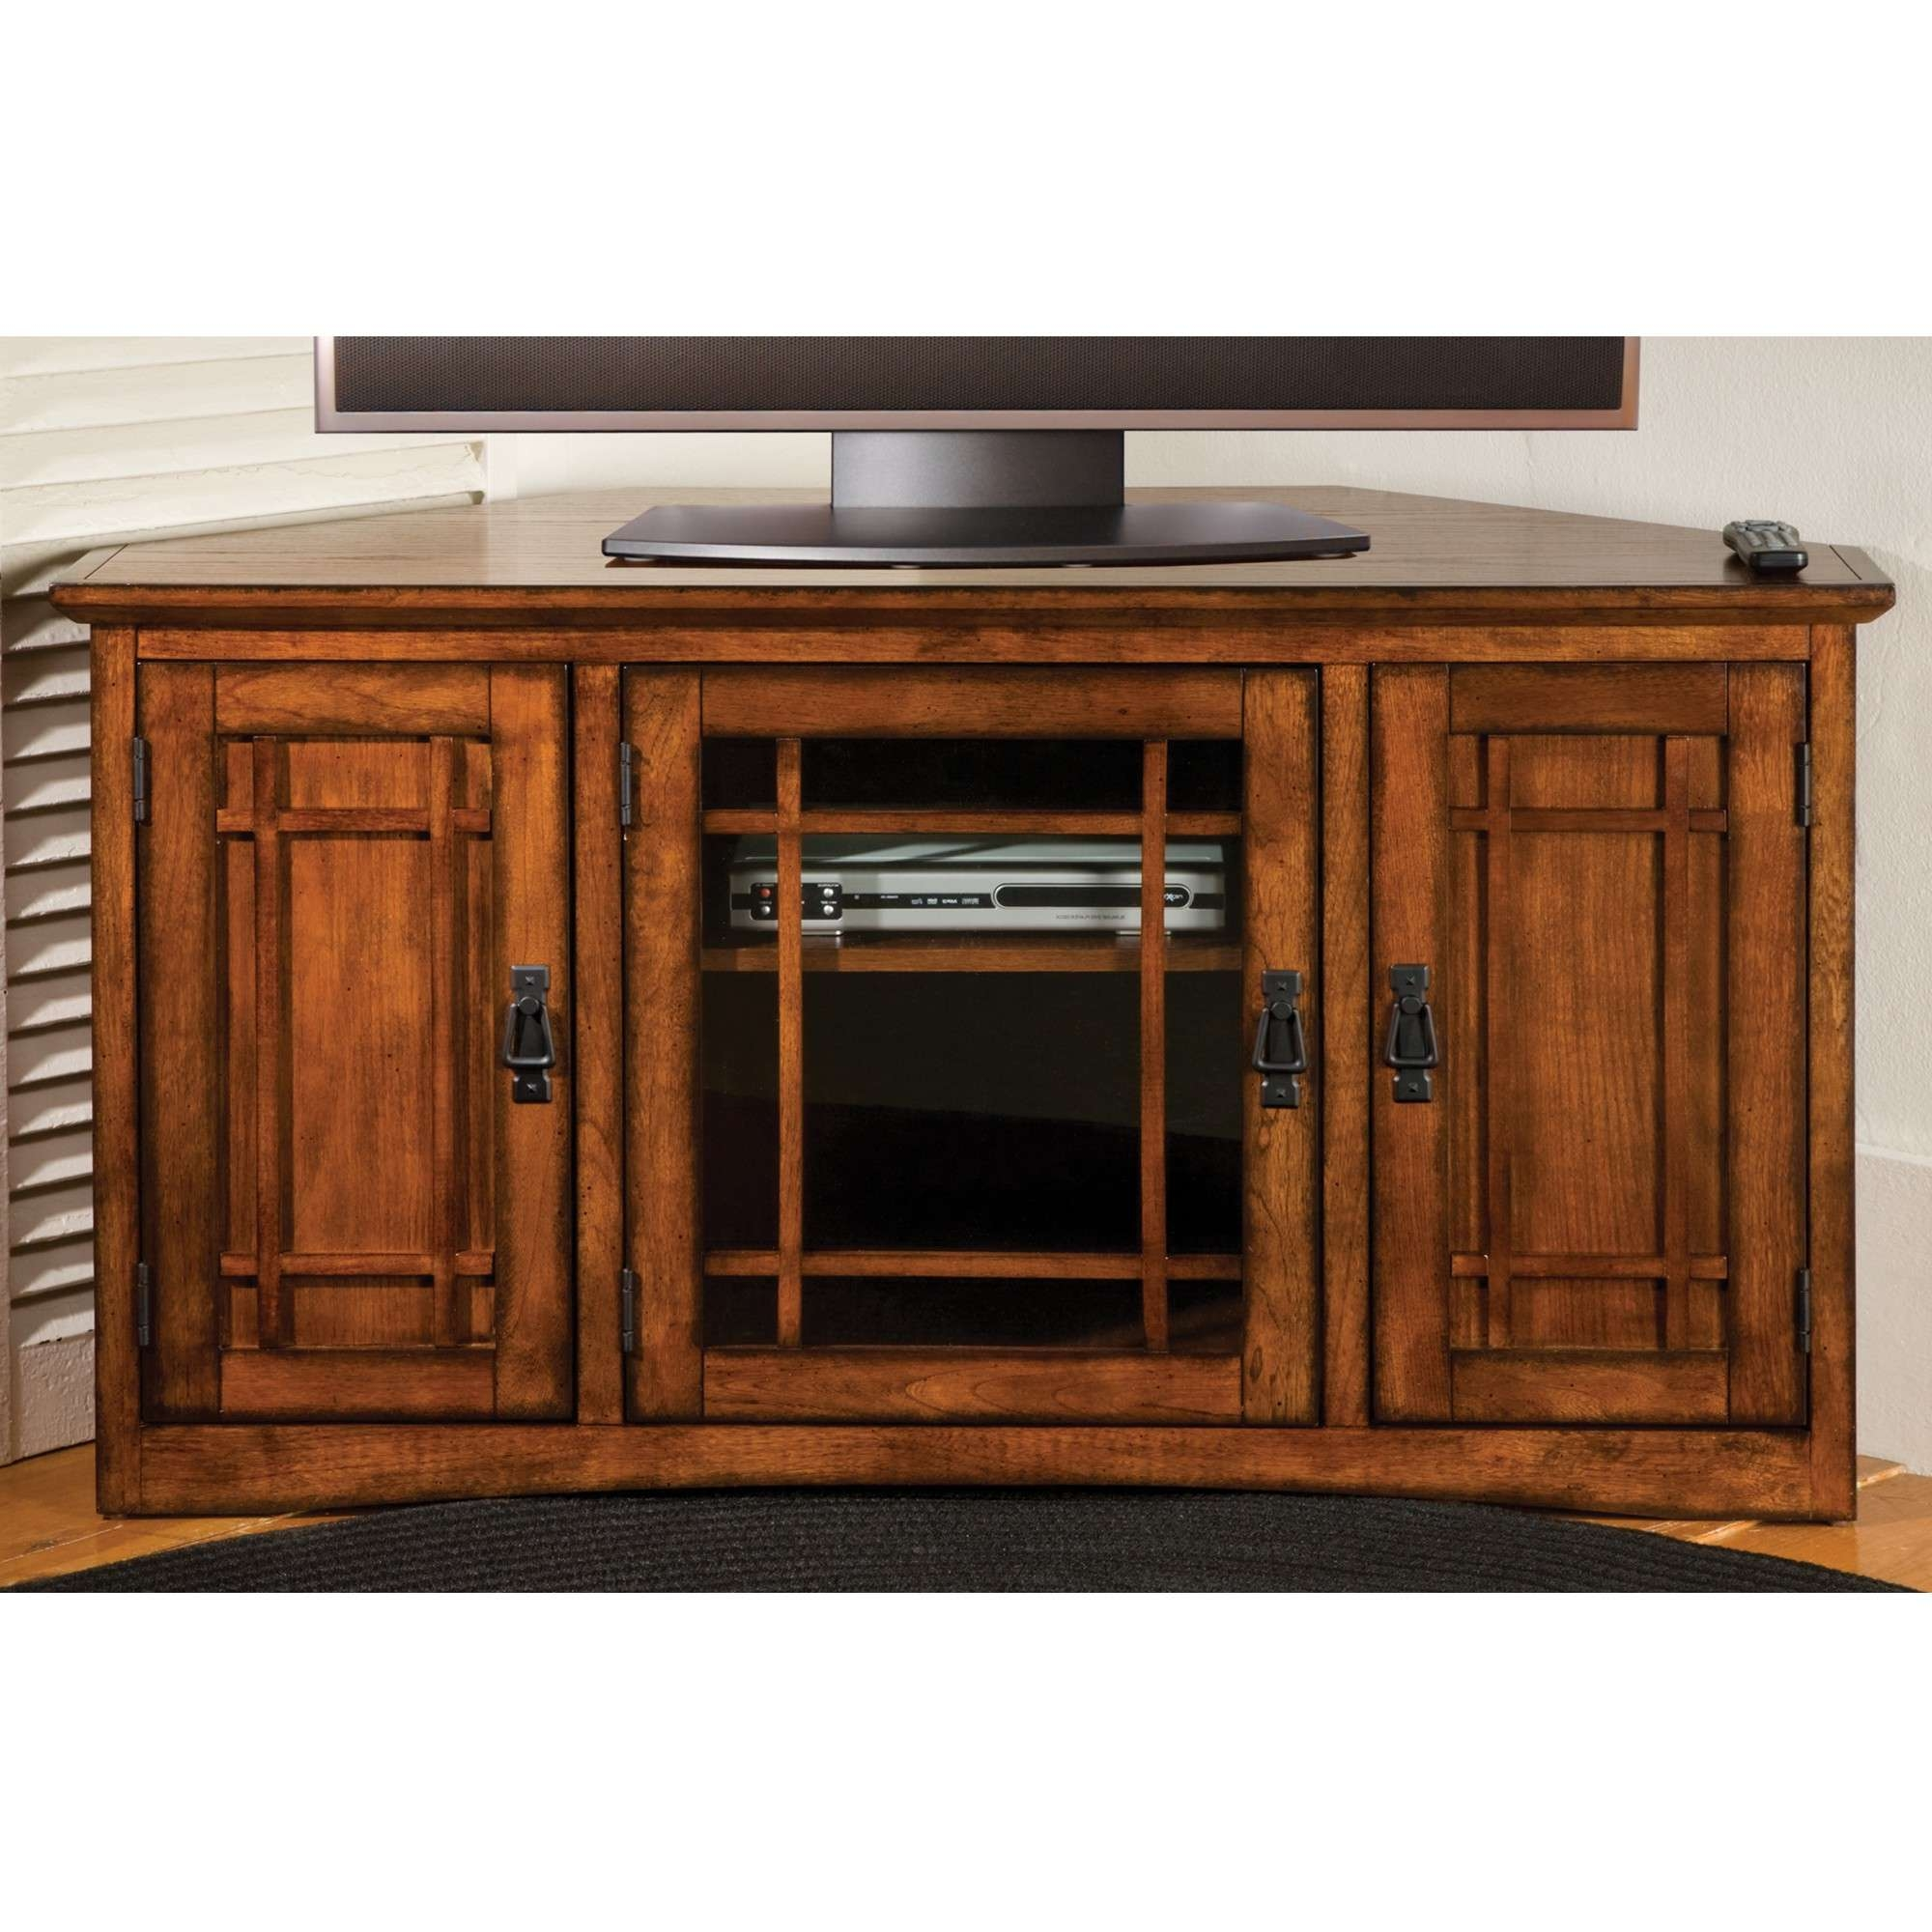 Awesome Corner Tv Cabinet With Doors For Your Lovely Home In Wooden Tv Cabinets With Glass Doors (View 11 of 20)